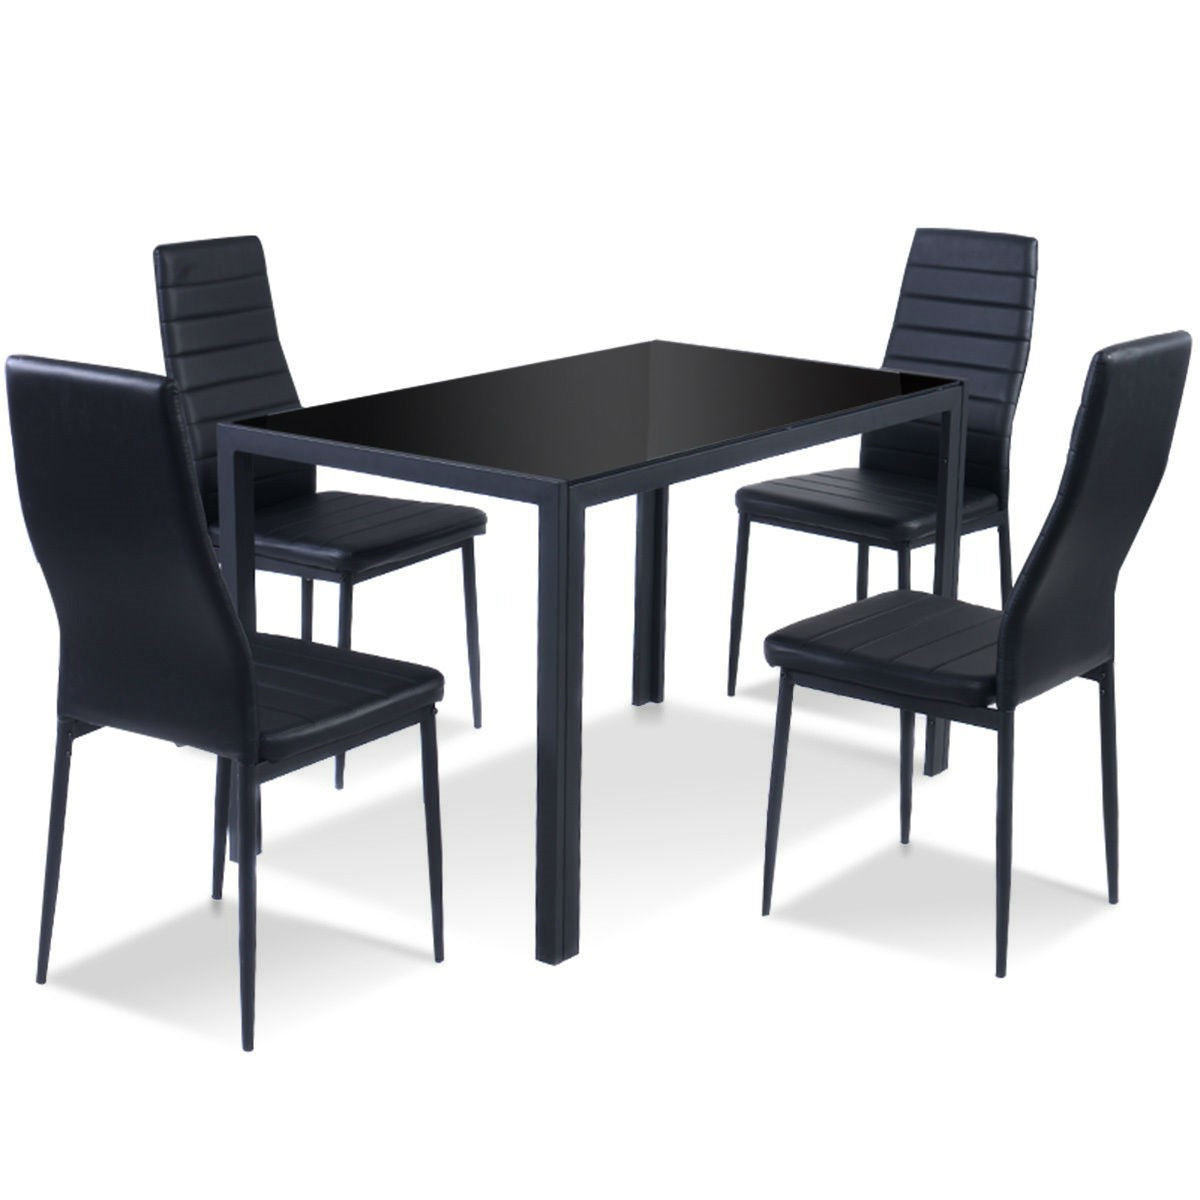 5 Piece Black Glass Tabletop Dining Set With Soft Leather Chairs